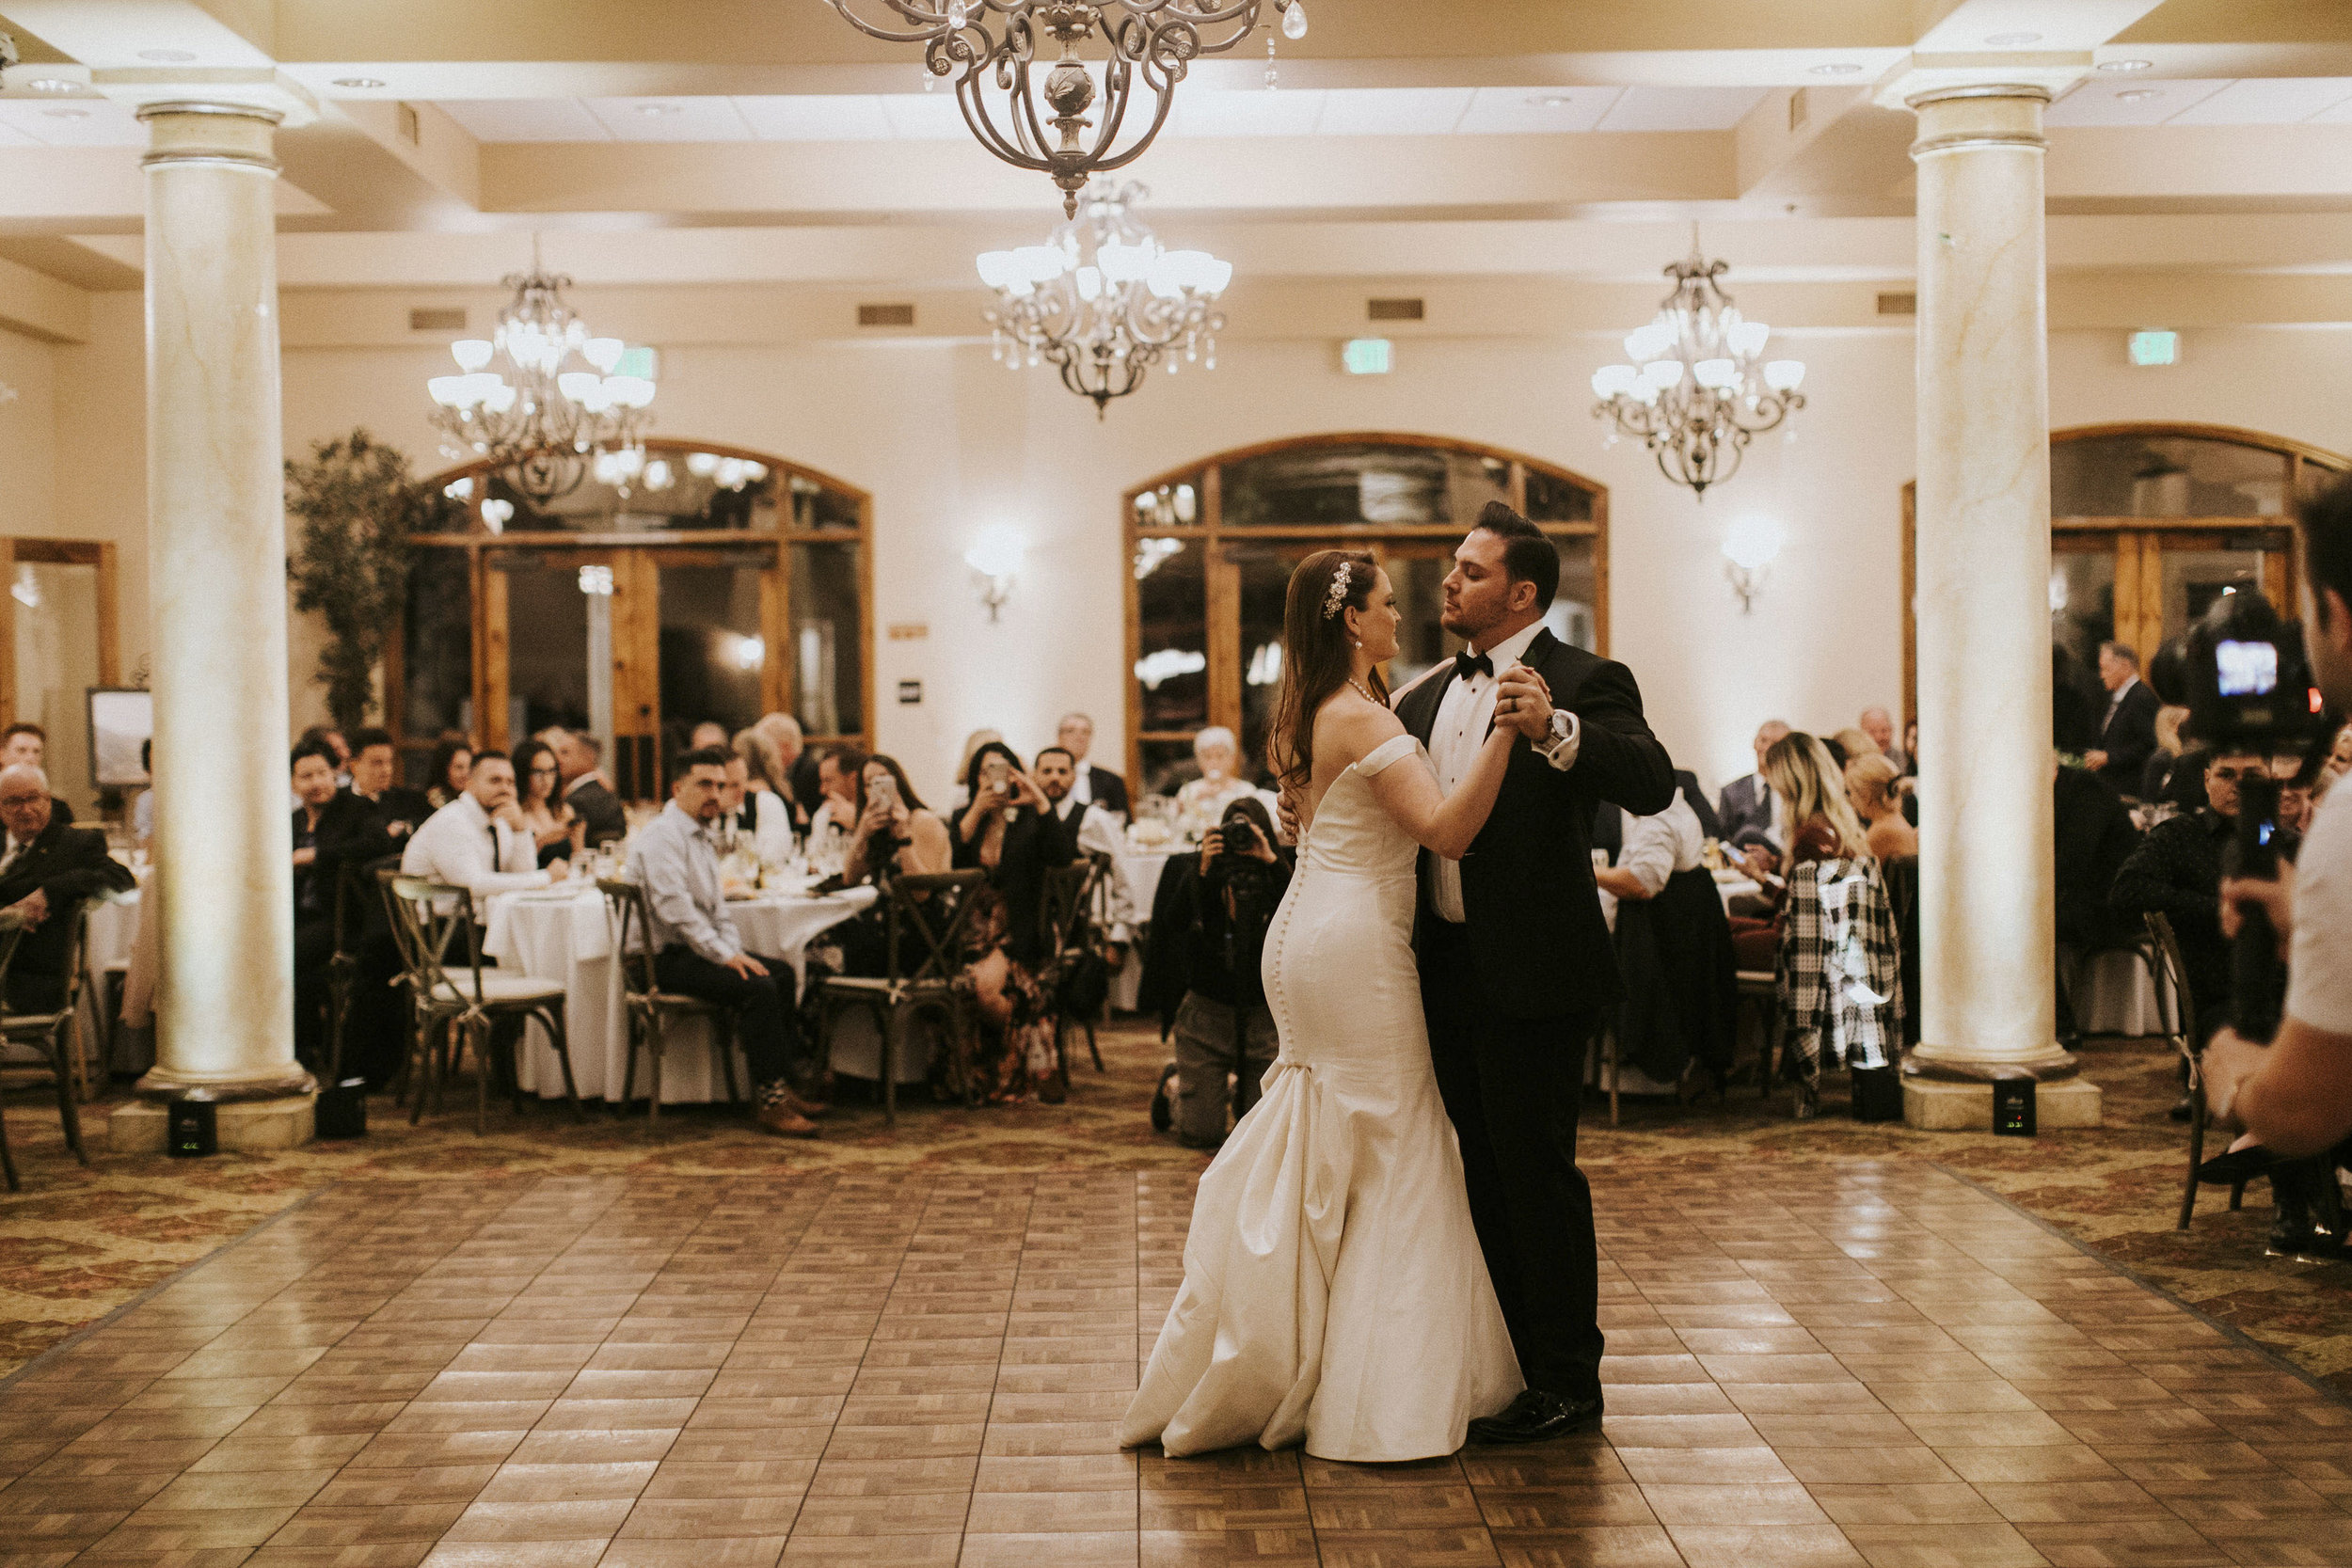 Domenica Beauty _ Hair and Makeup Artist _Wedding _ Temecula, CA _ Catherine and Darryl _ 53.JPG